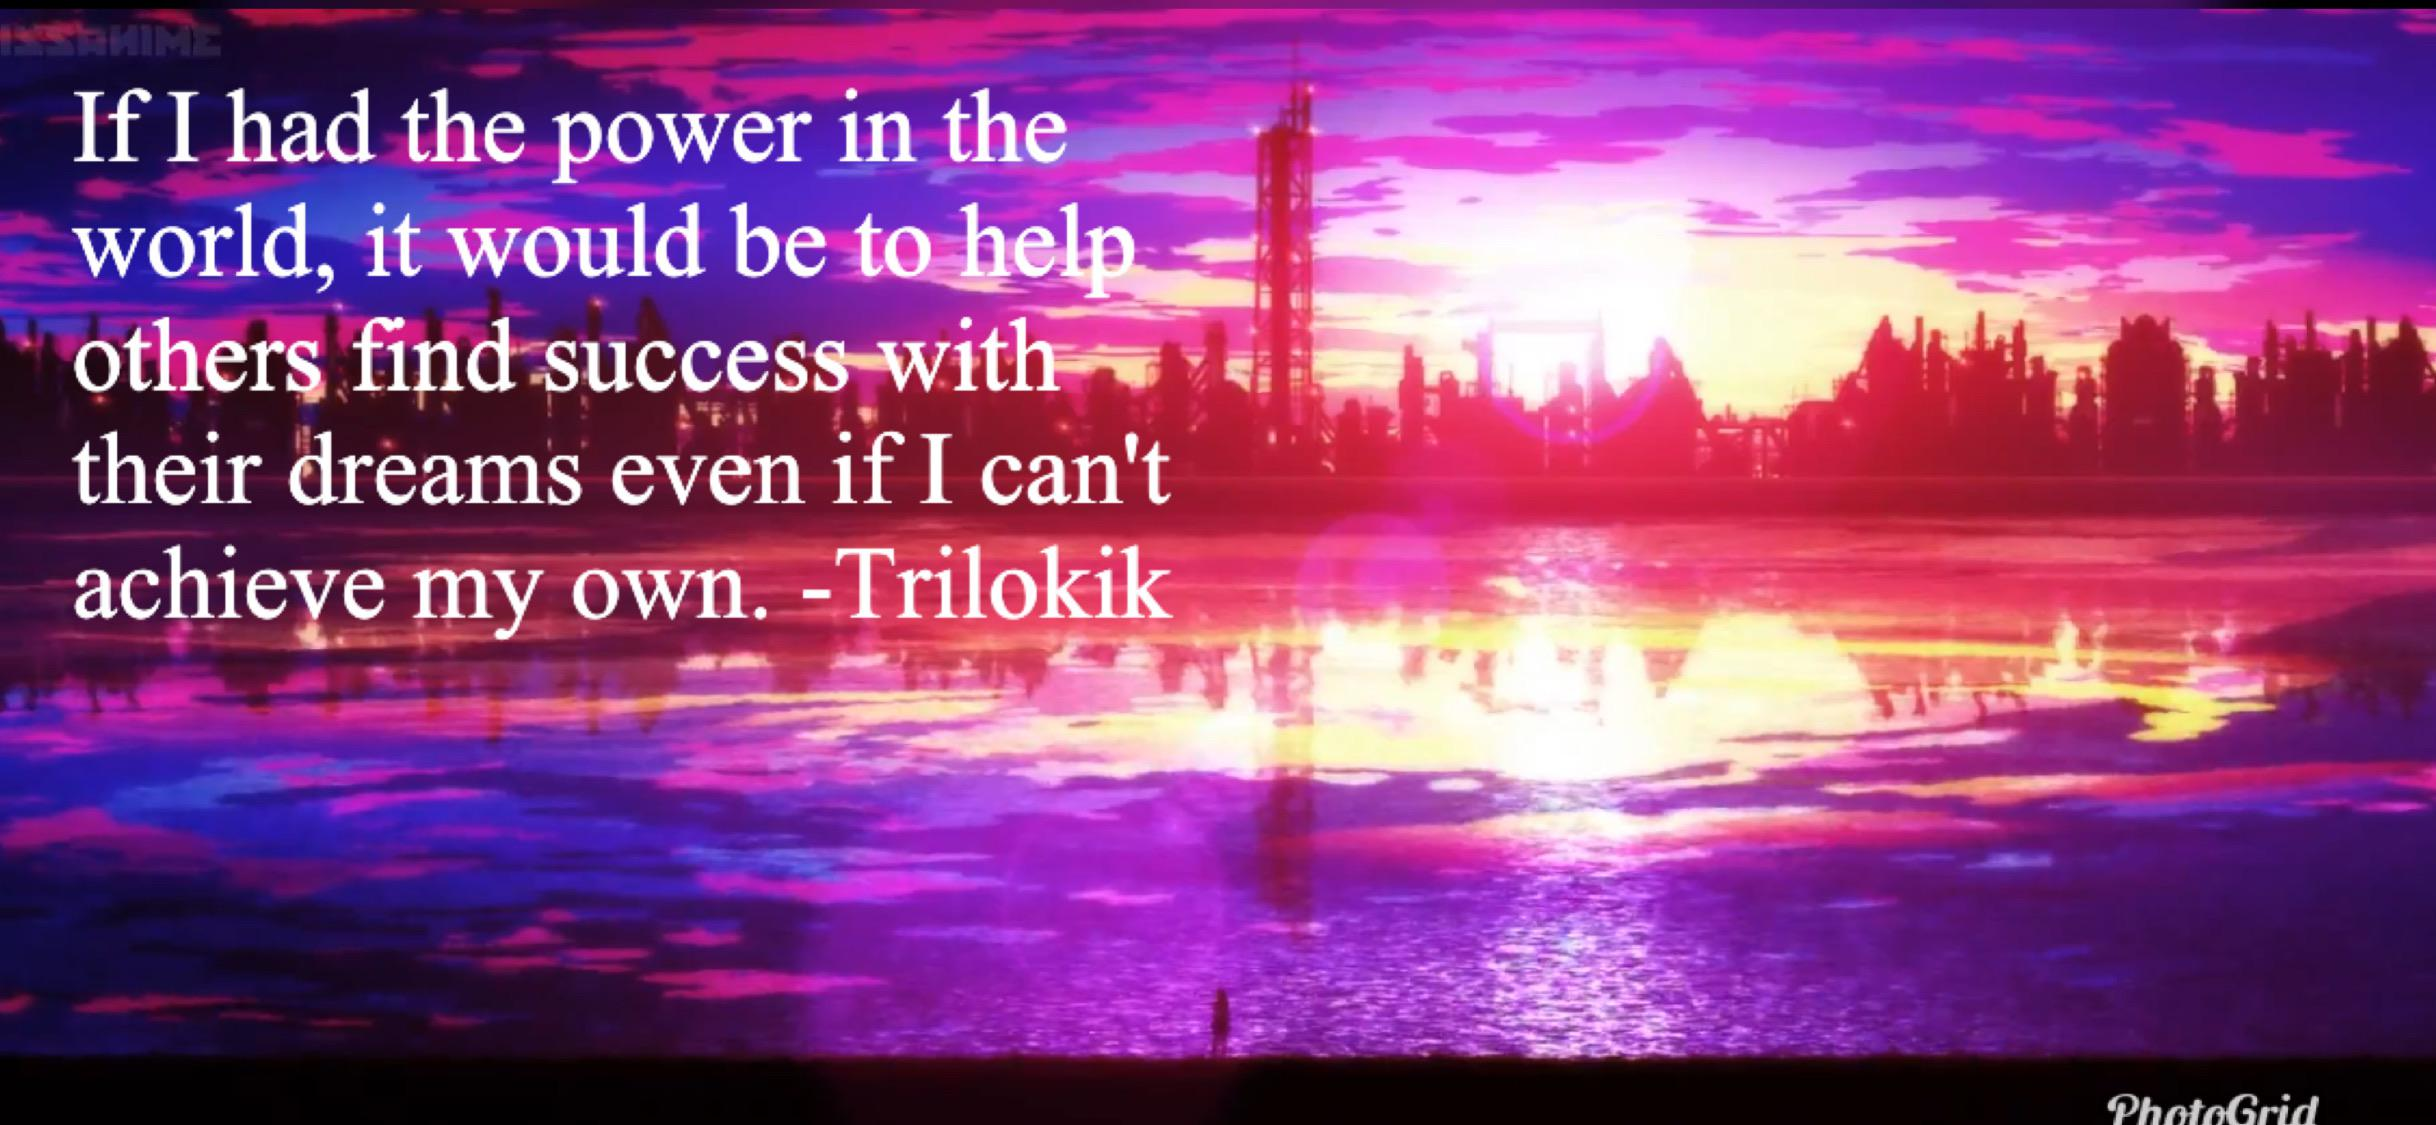 If I had the power in the world, it would be to help others find success with their dreams even if I can't achieve my own. -Trilokik (2436×1125)